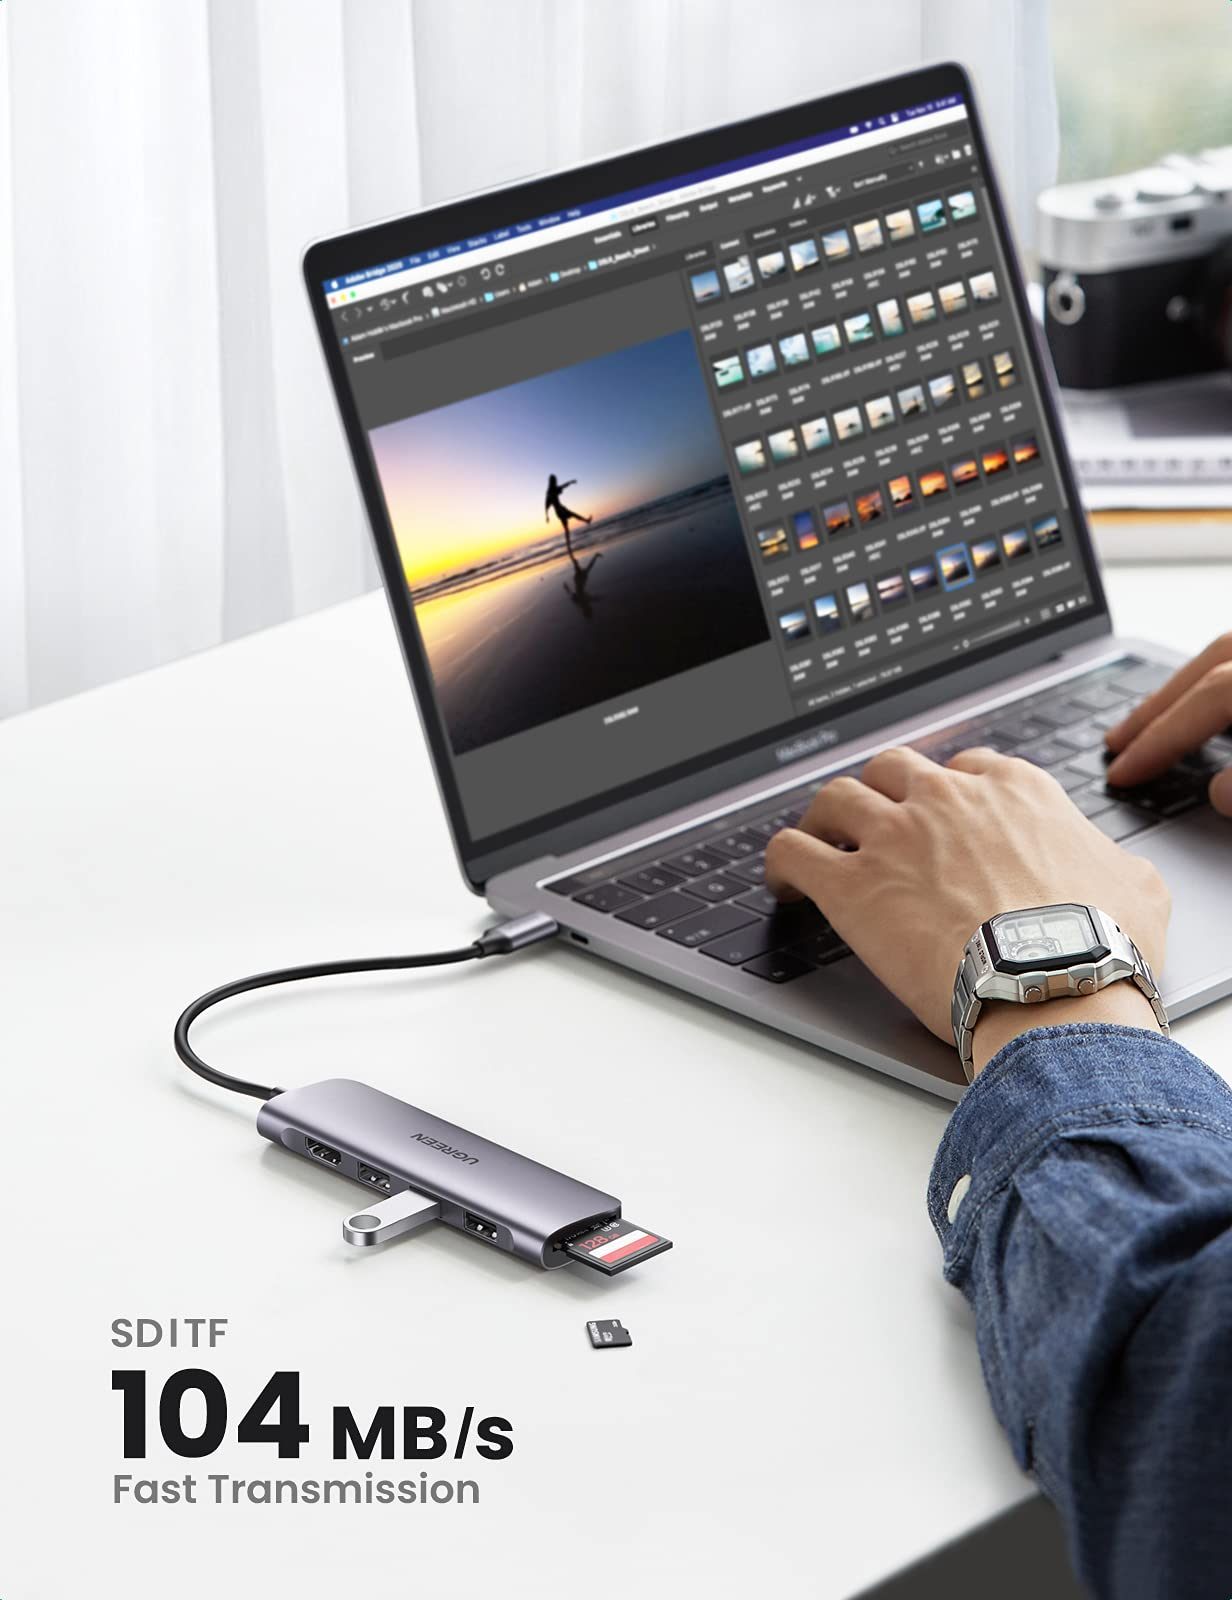 UGREEN 6 in 1 USB C Hub Multiports Type C Dock to HDMI Adapter USB-C Docking Station with 4K HDMI, SD TF Card Reader Slot, 3 USB 3.0 Ports Compatible for MacBook Pro/Air, Galaxy S20+,iPad Pro 2021,etc